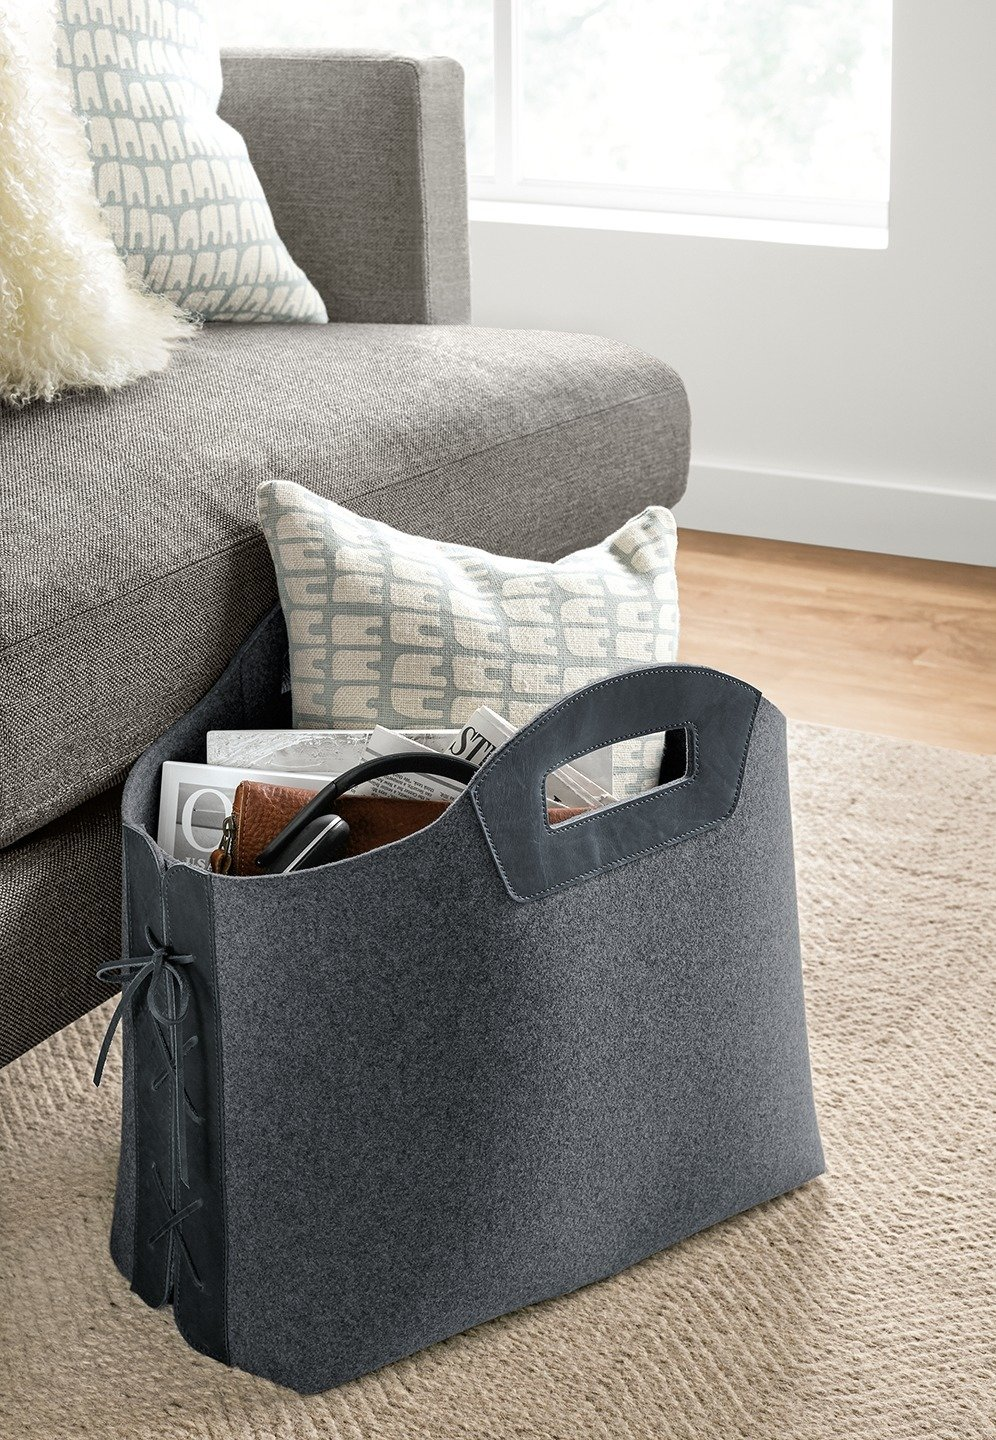 Storage Room Store magazines and more in this sturdy felt tote. Leather laces and handles create a sophisticated mix of materials. The tote stands upright so you can easily place it next to your sofa or under your desk.  Photo 2 of 9 in How to Use Modern Home Decor in Unexpected Ways from Modern Home Decor